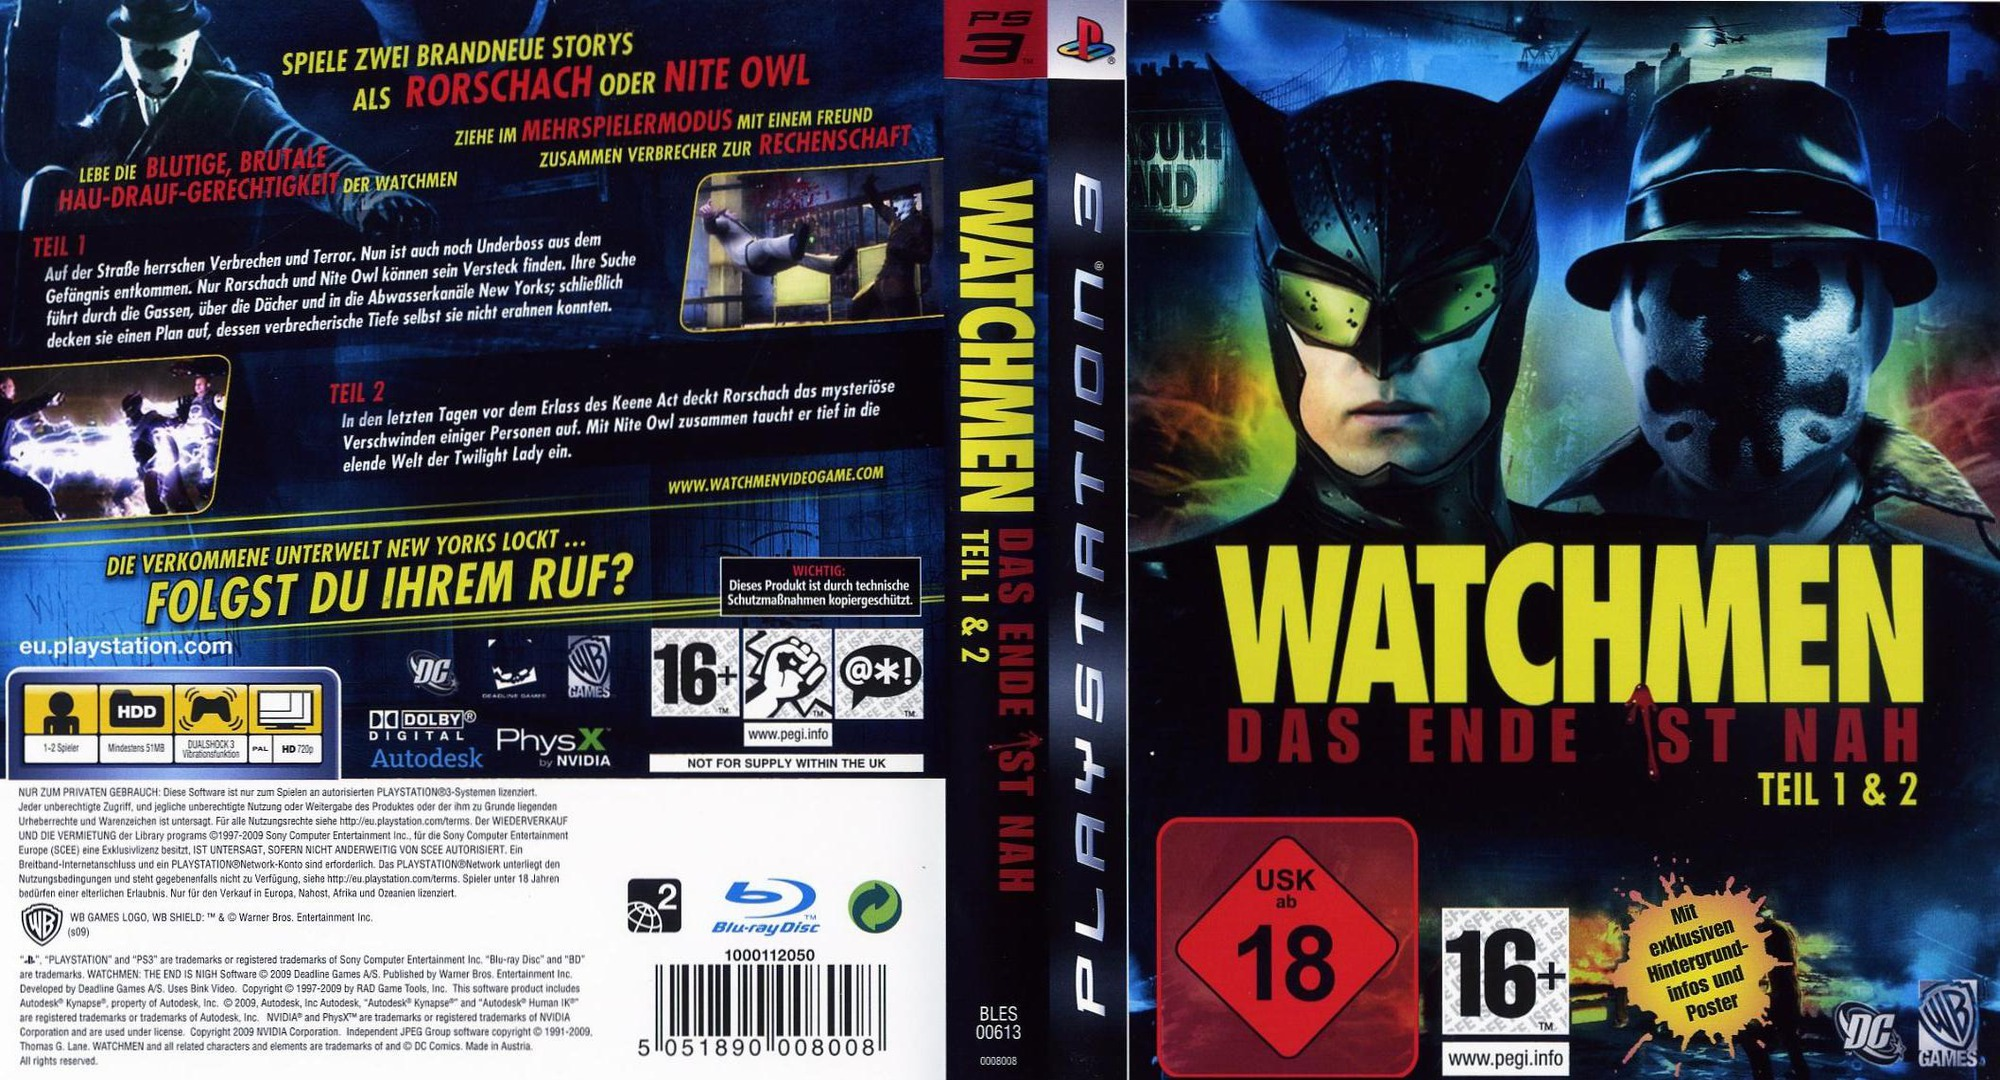 Watchmen: Das Ende Ist Nah - Tail 1&2 PS3 coverfullHQ (BLES00613)